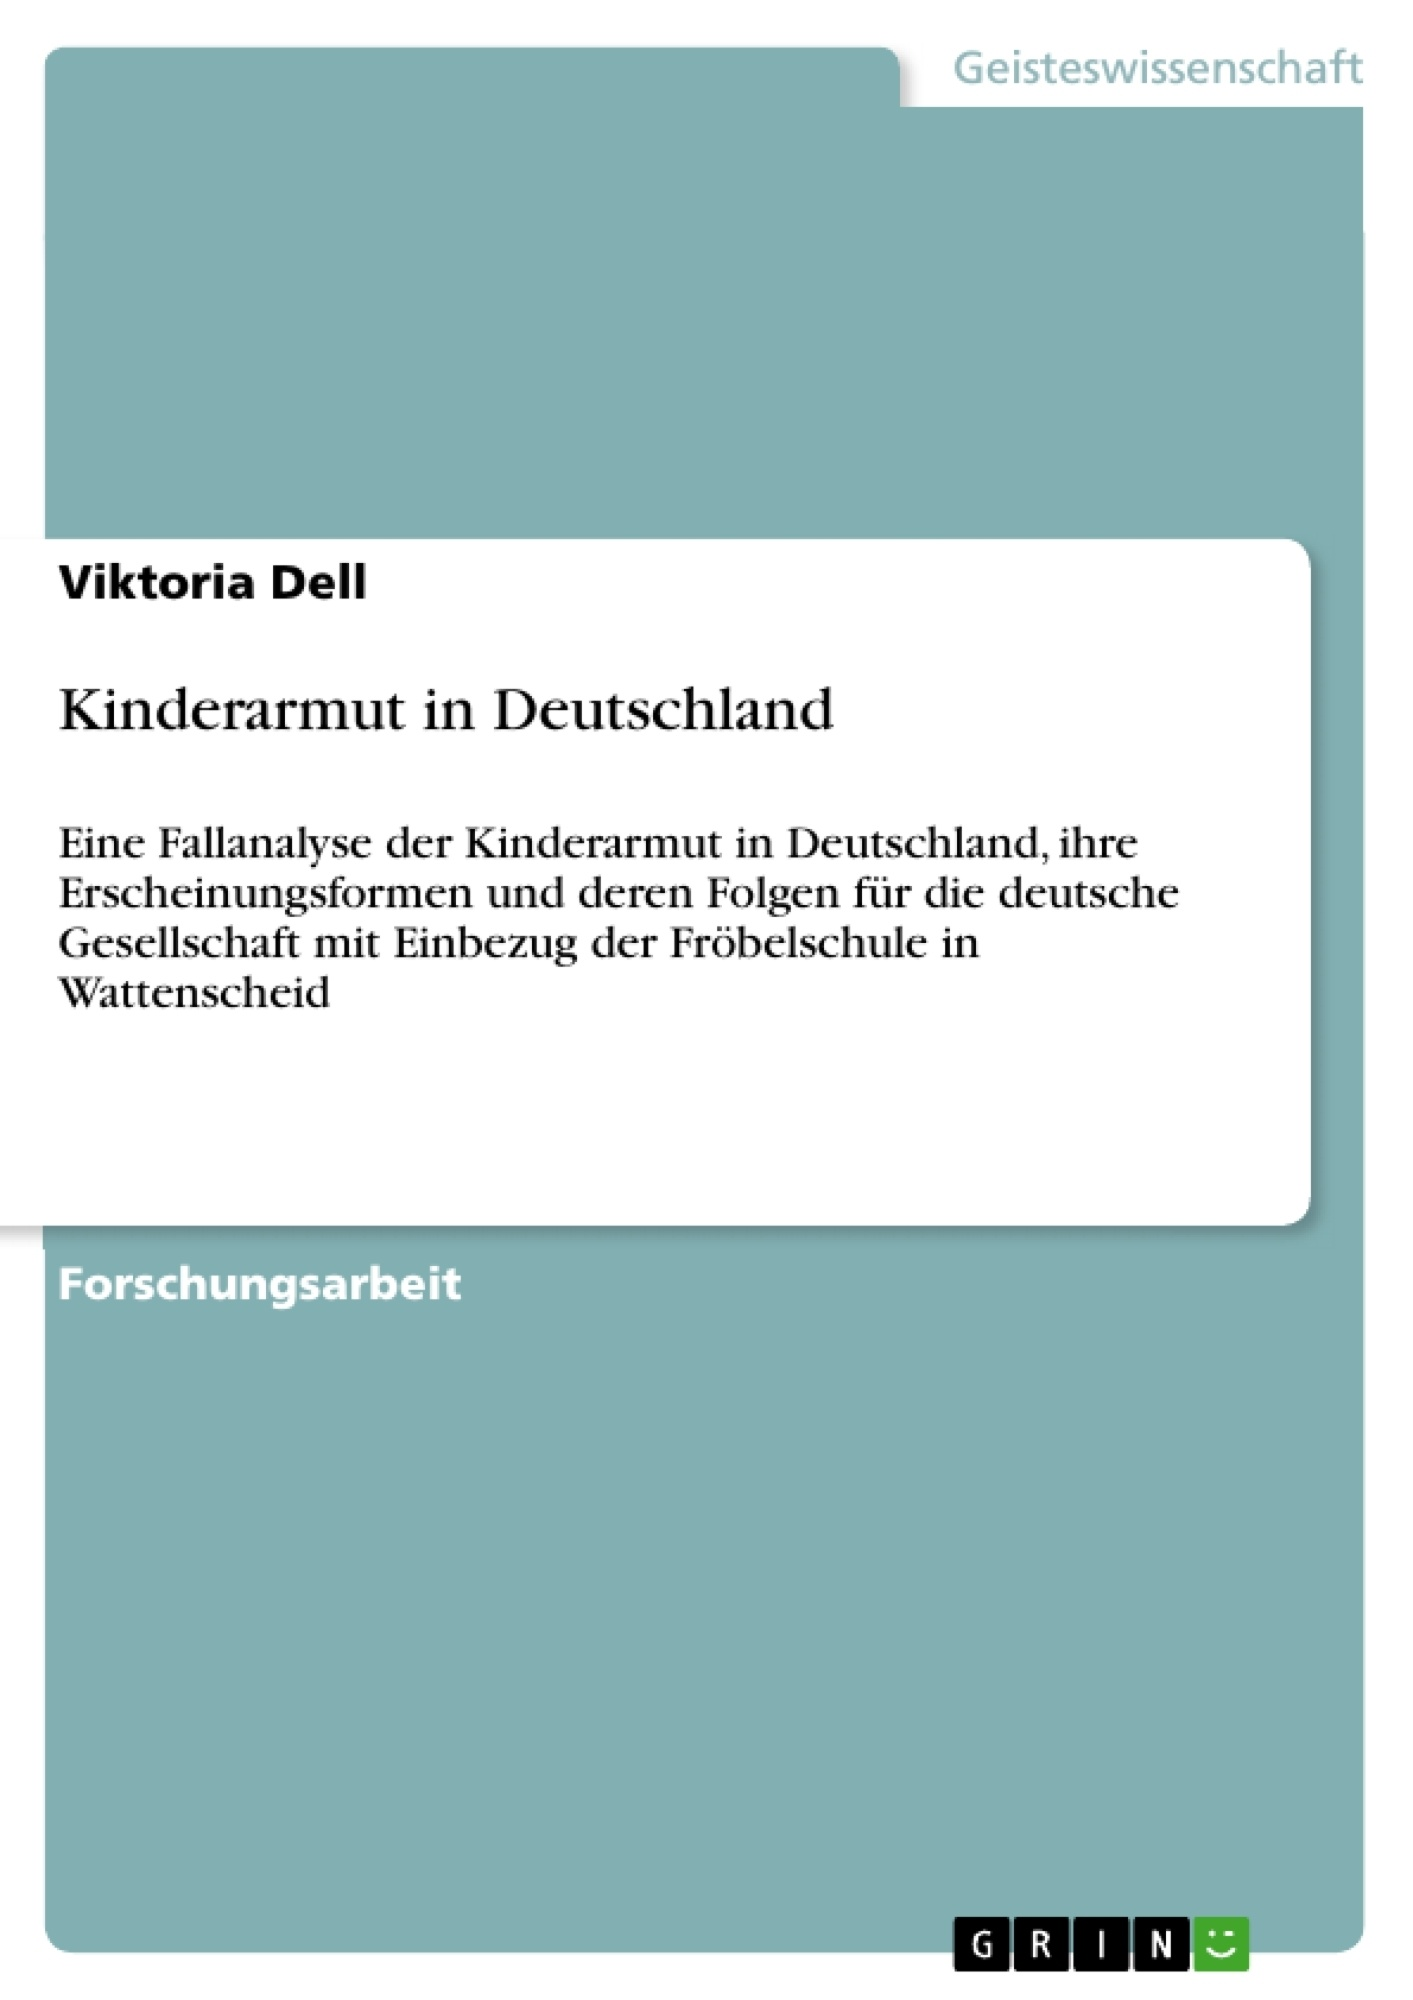 Titel: Kinderarmut in Deutschland